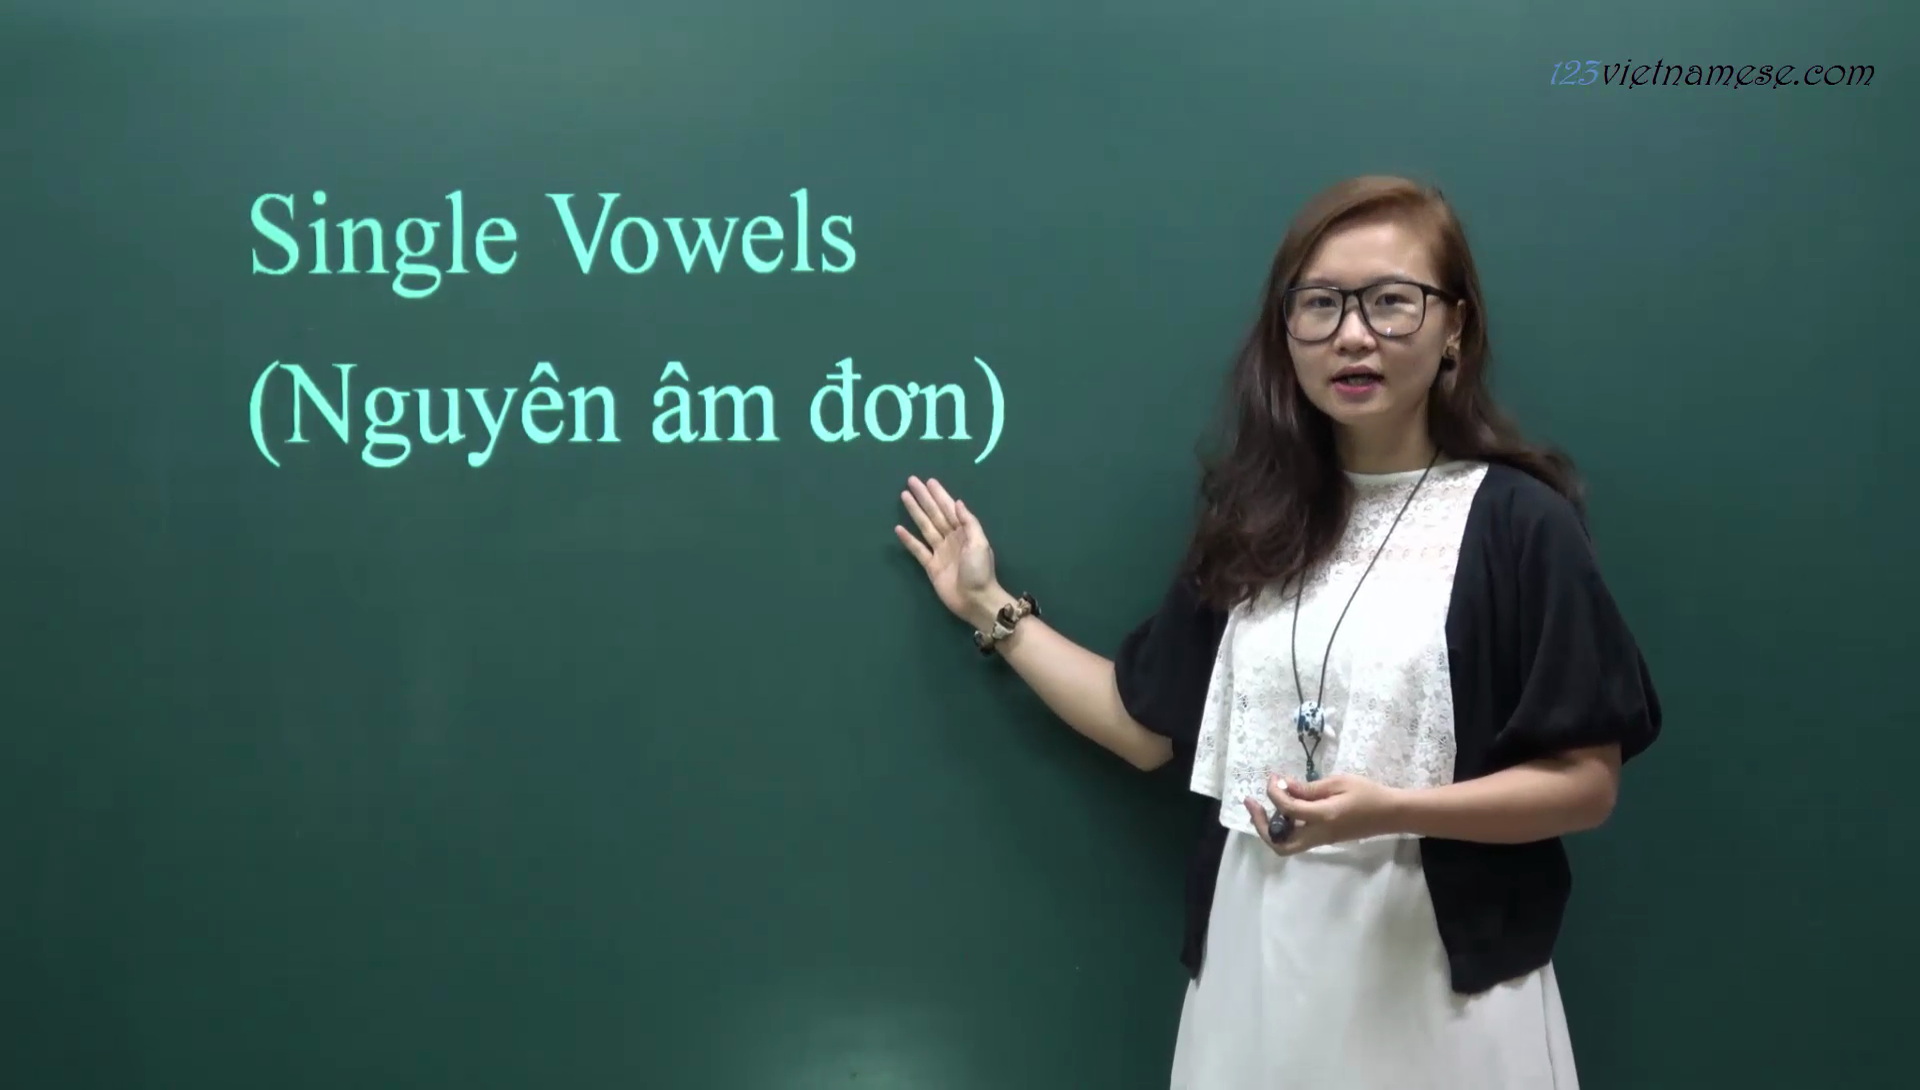 Single vowels in Vietnamese